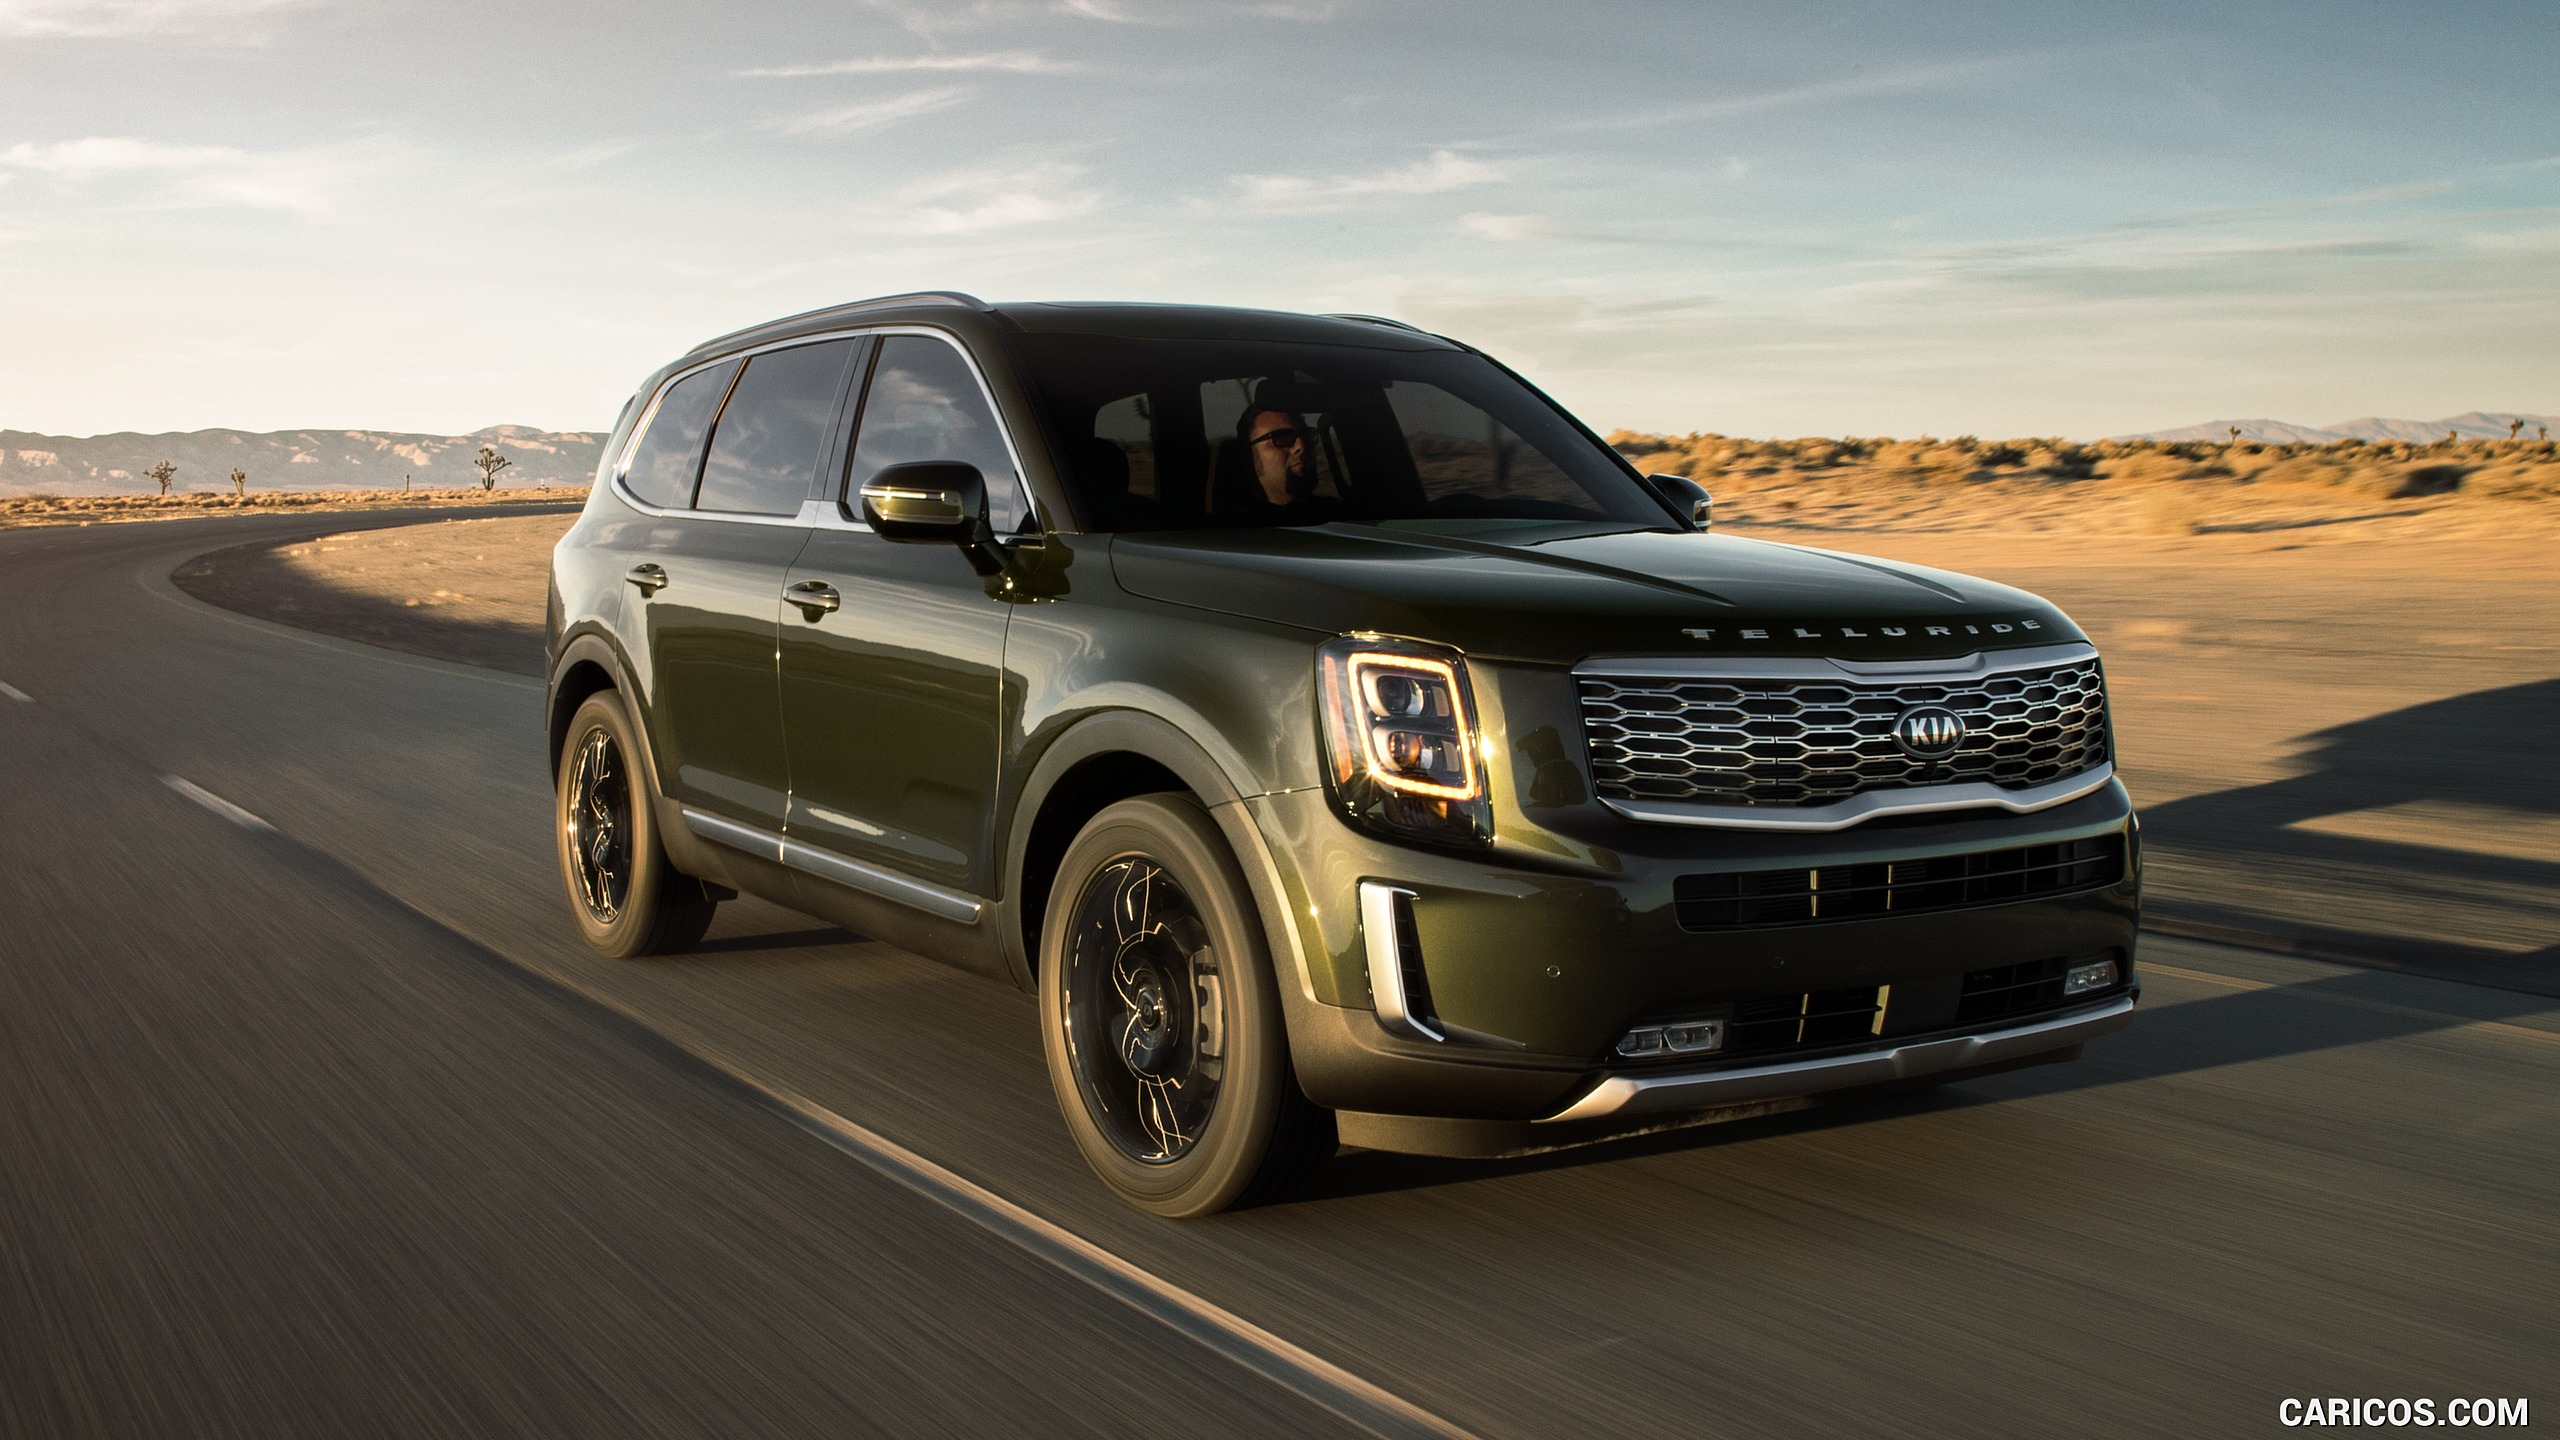 2020 Kia Telluride   Front Three Quarter HD Wallpaper 24 2560x1440